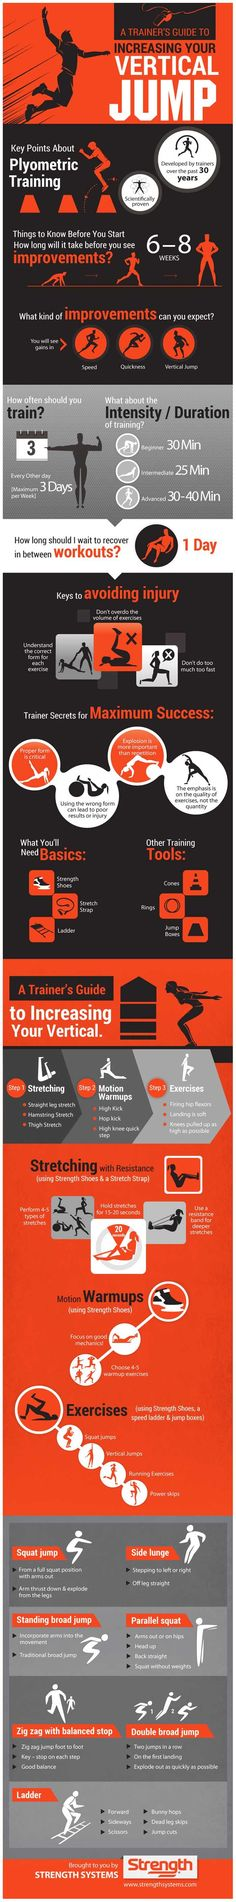 Infographic: A Trainer's Guide to Increasing Your Vertical Jump